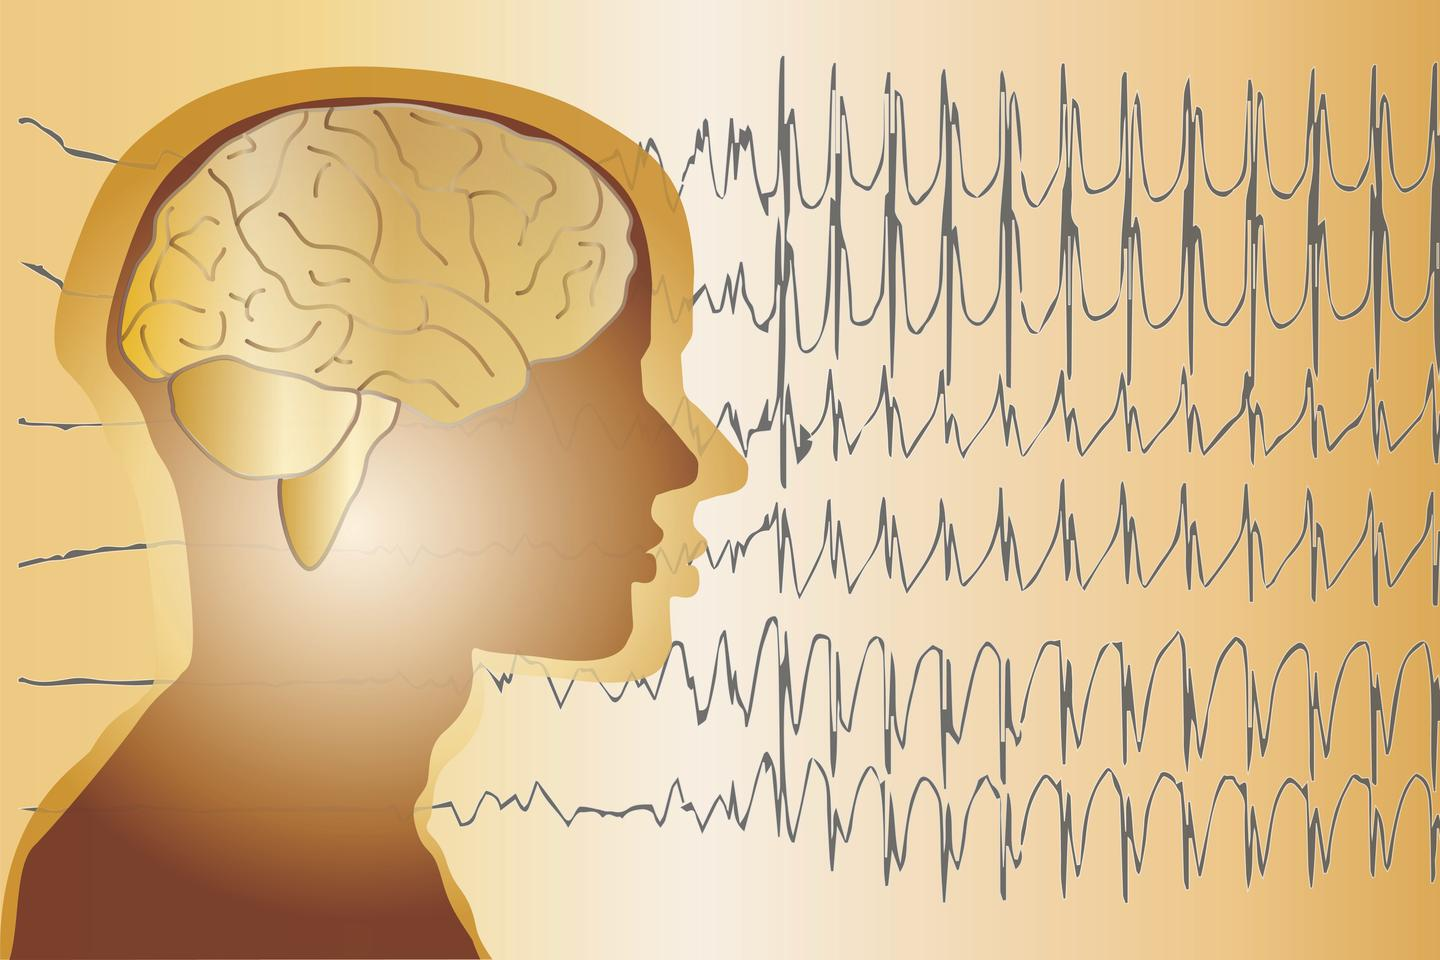 Unexpected epileptic seizures are not only unsettling, but they can also result in injuries